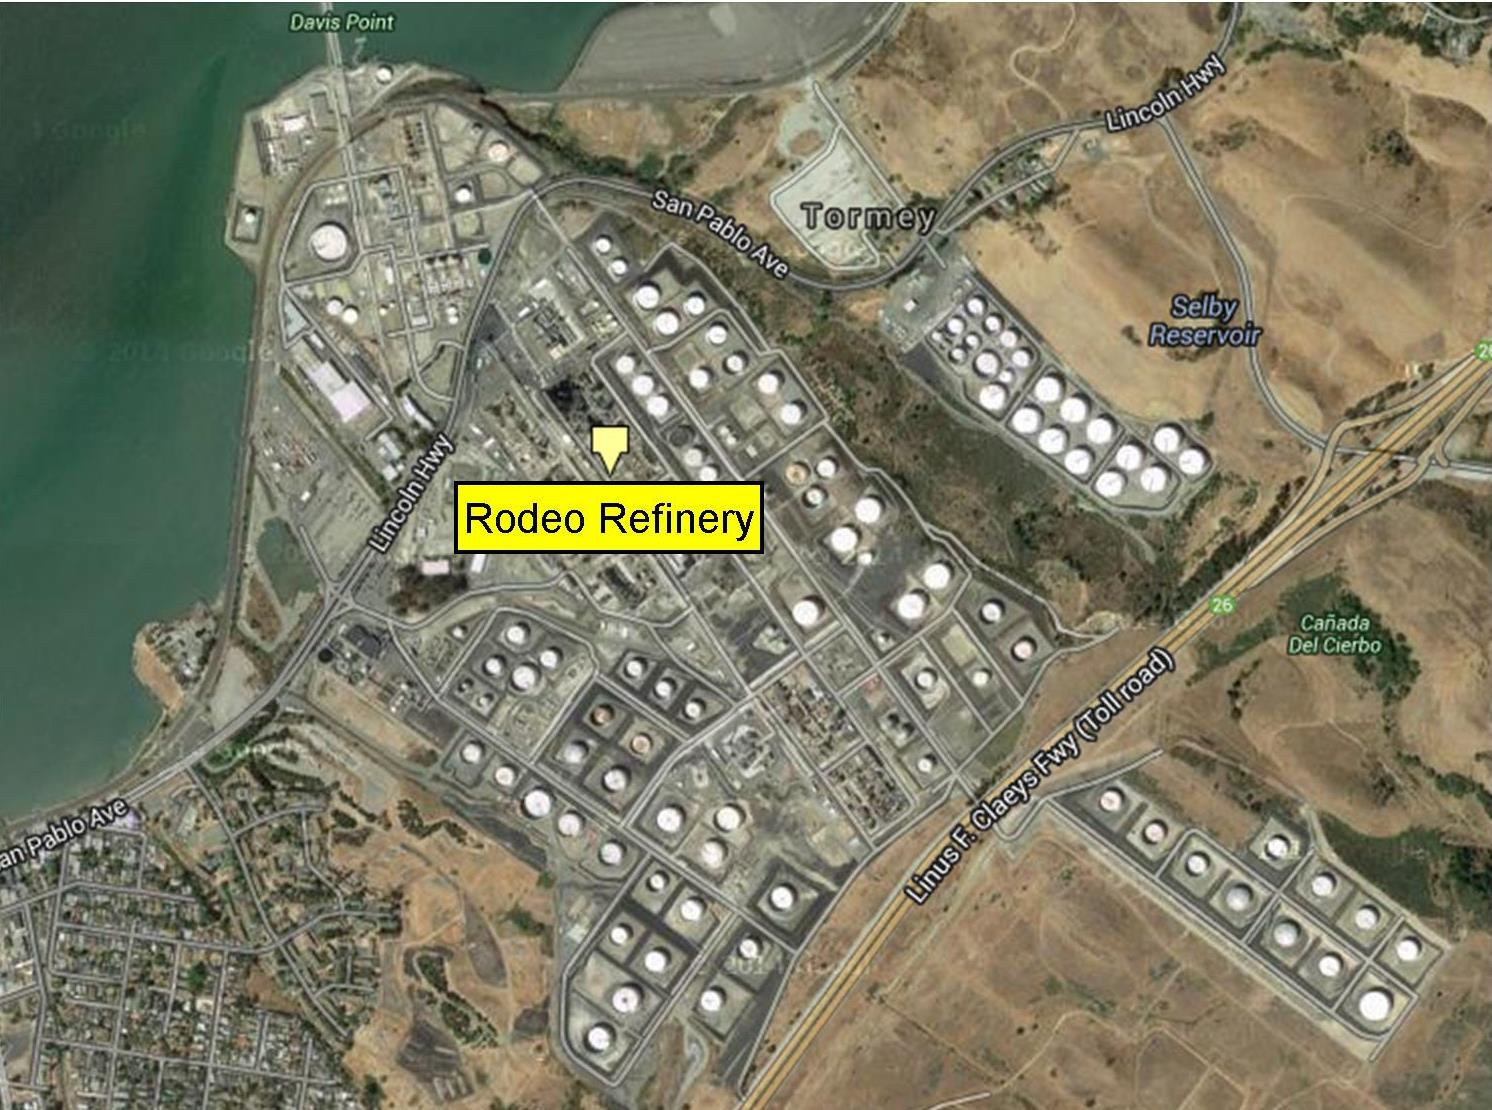 4. ConocoPhillips/Rodeo San Francisco Refinery The refinery in Rodeo was the first of the five major oil refineries now operating on the shores of the Bay Area.